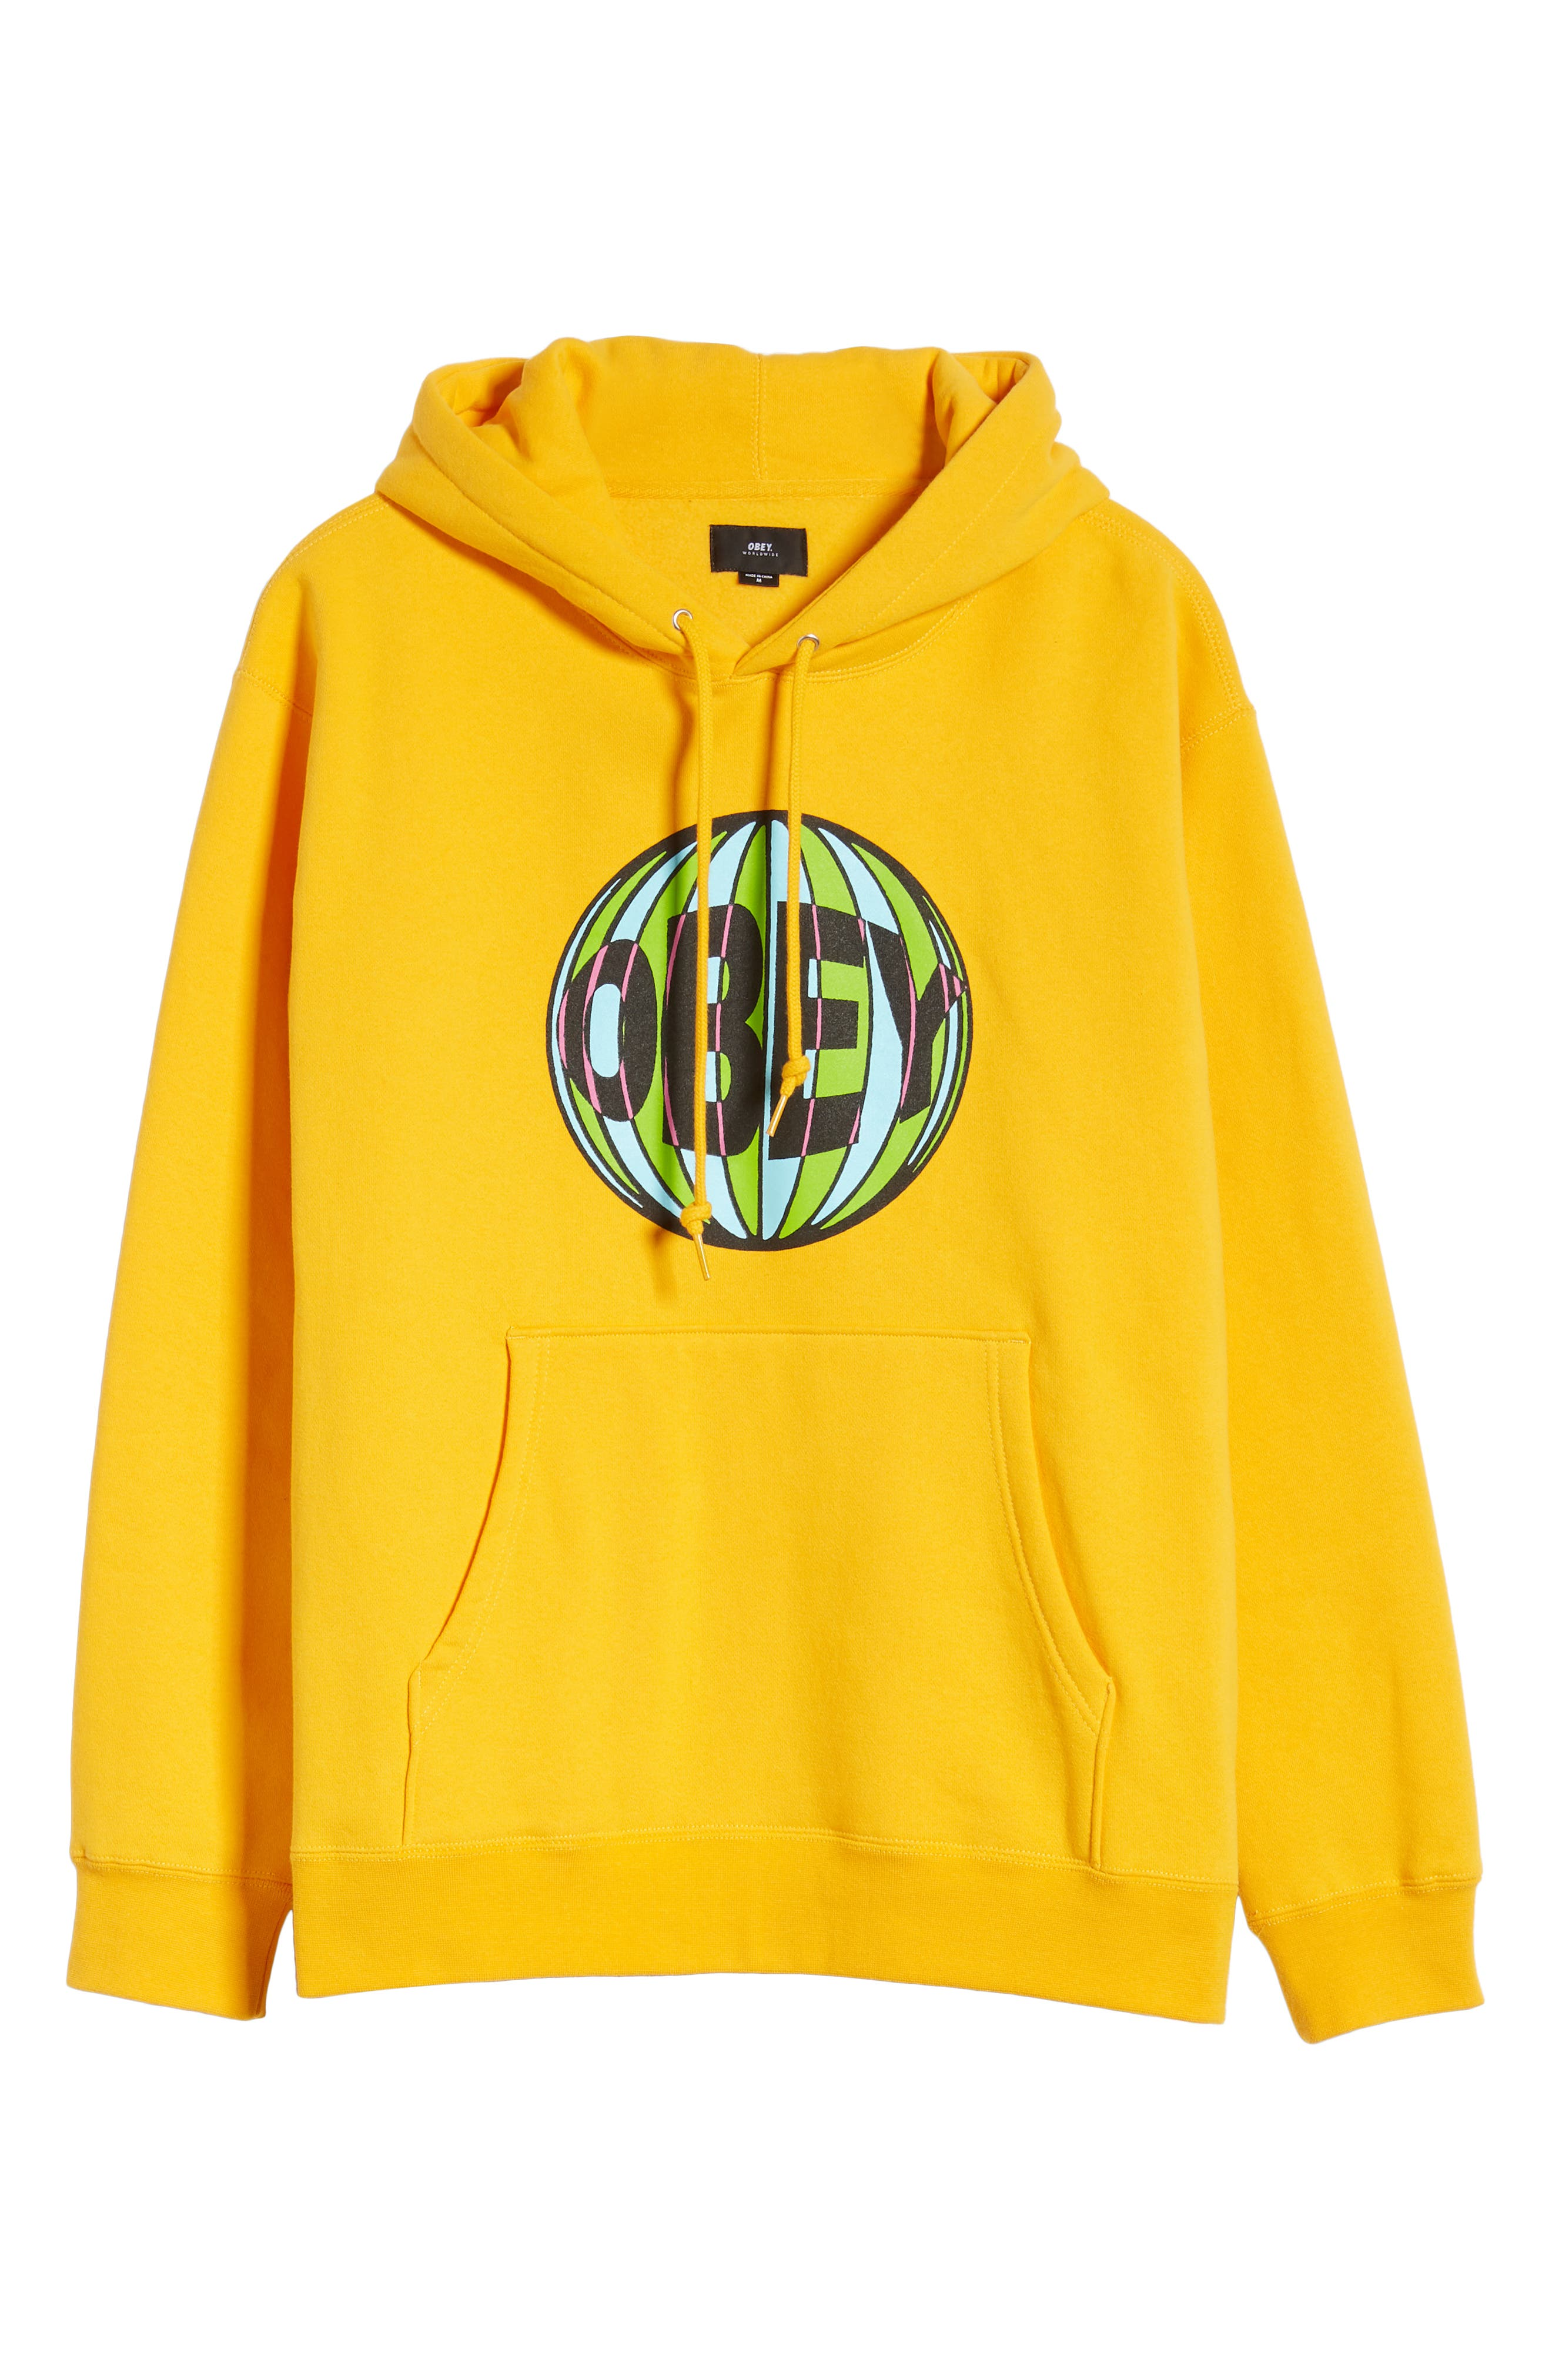 OBEY, Ball Hooded Sweatshirt, Alternate thumbnail 6, color, GOLD